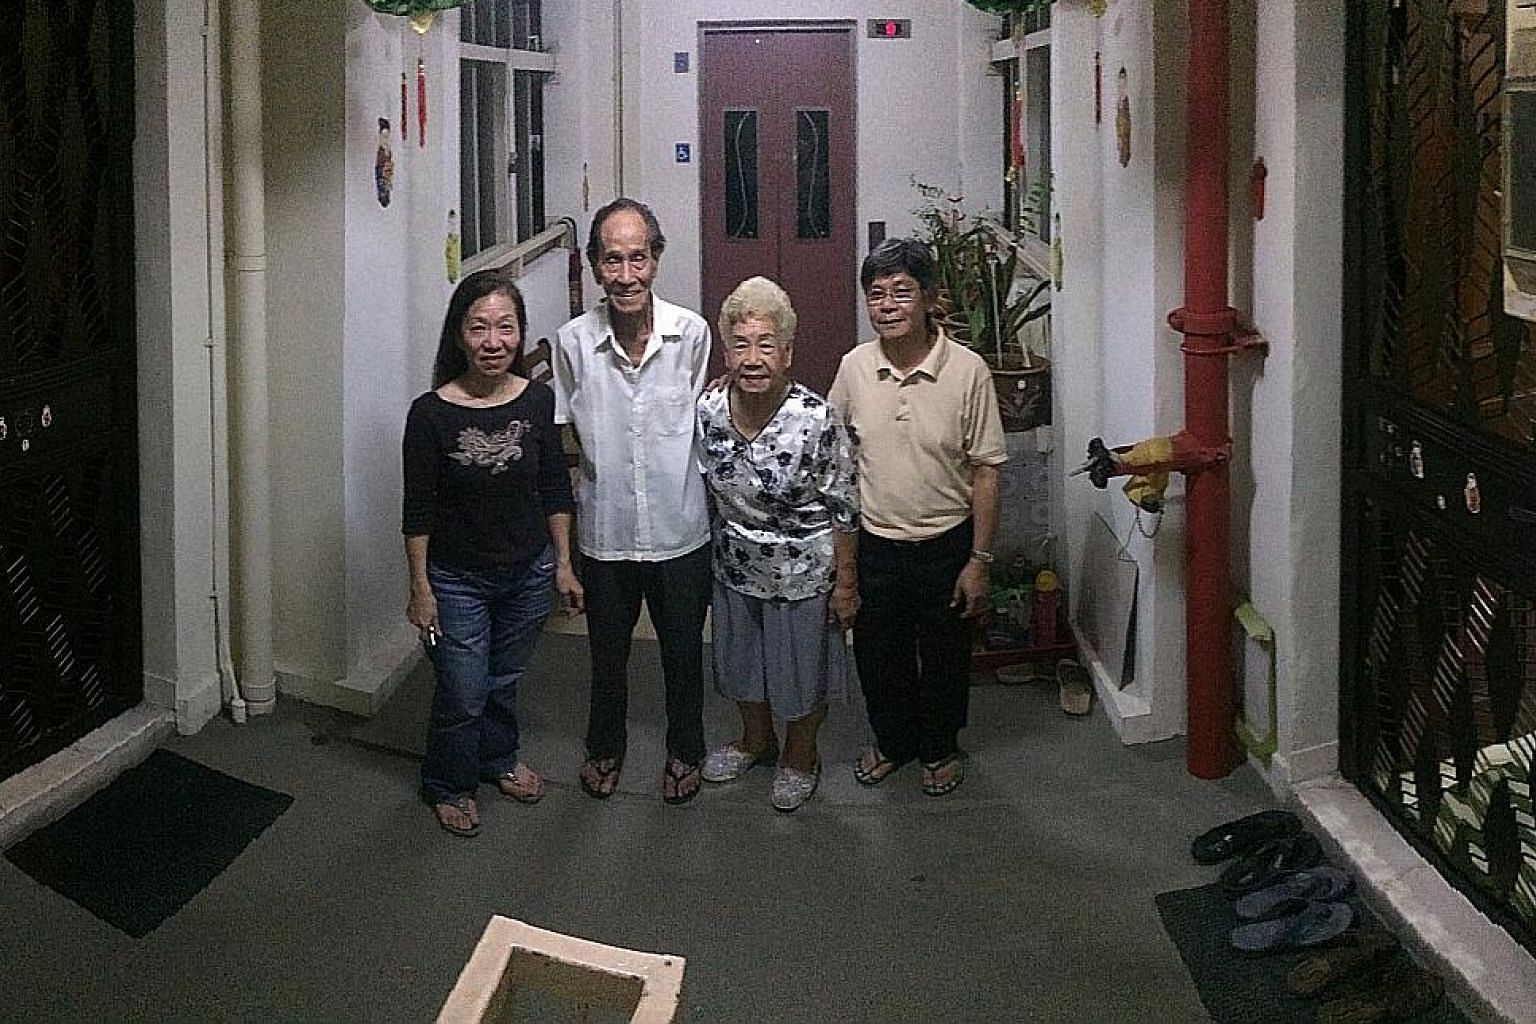 Madam Lucy Tan (far left), with her parents-in-law, Mr Koh Woo Keng, 87, and Madam Chan Mui Gek, 84, and her brother-in-law, Mr Willy Koh, 60, at the lift lobby in between the front doors of their jumbo flat.